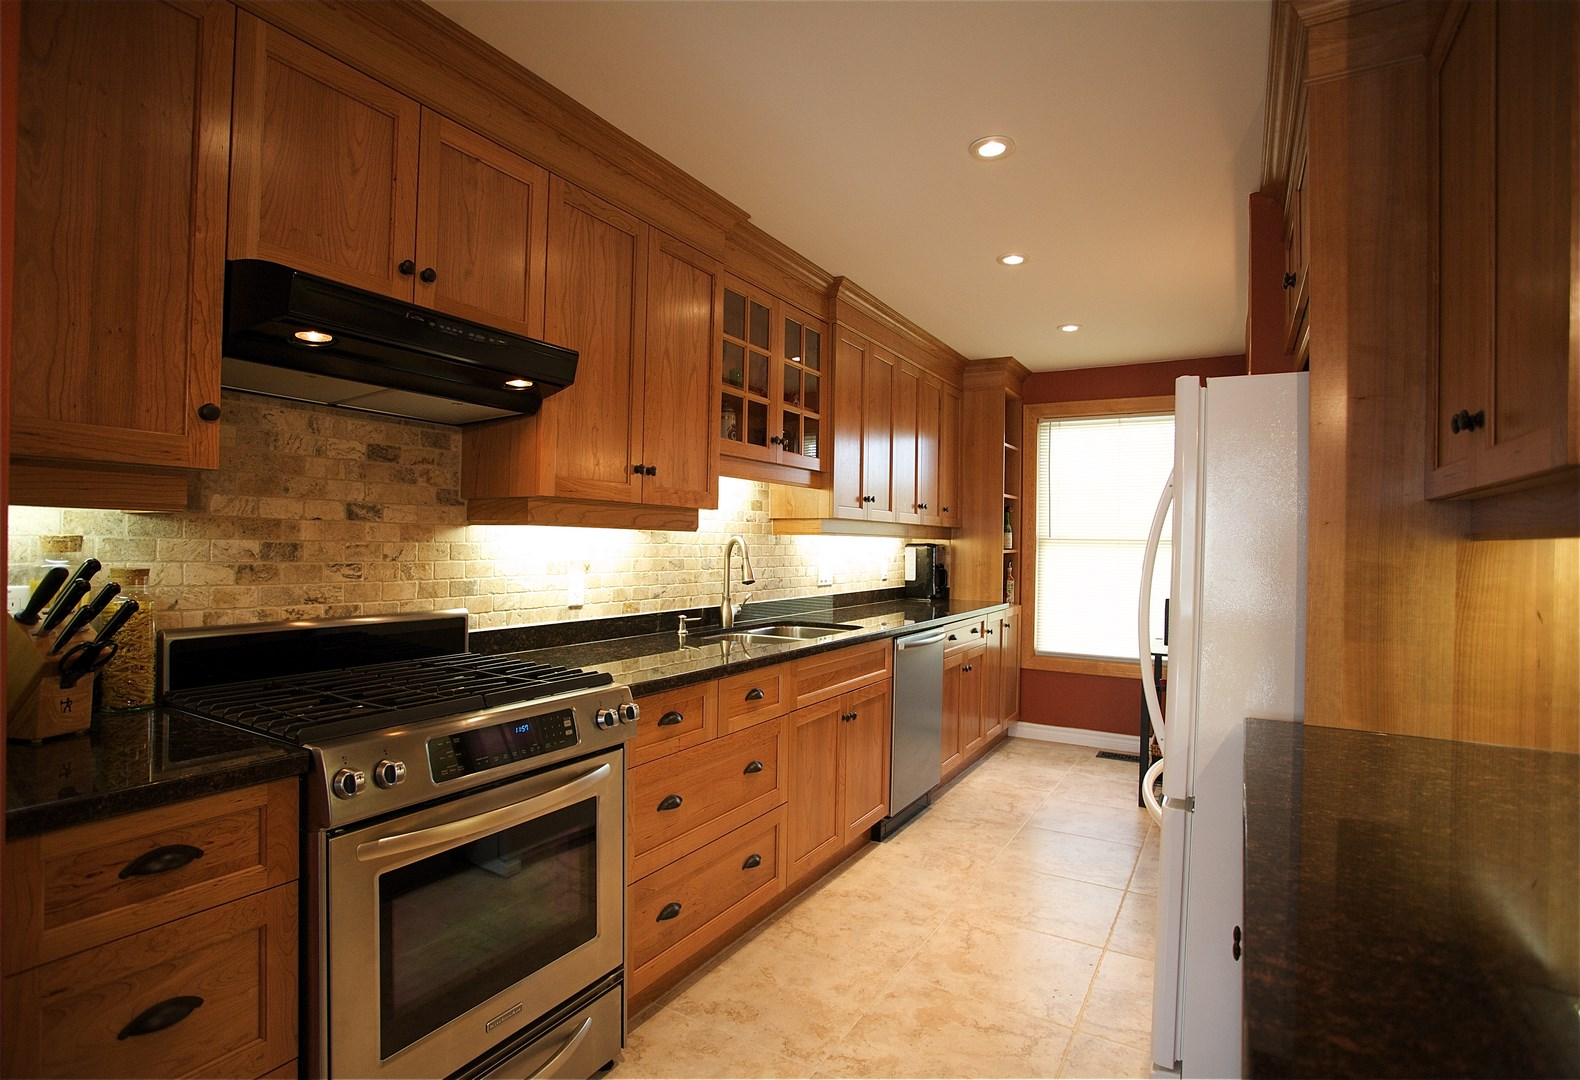 European Frameless Style Kitchen Cabinetry In Natural